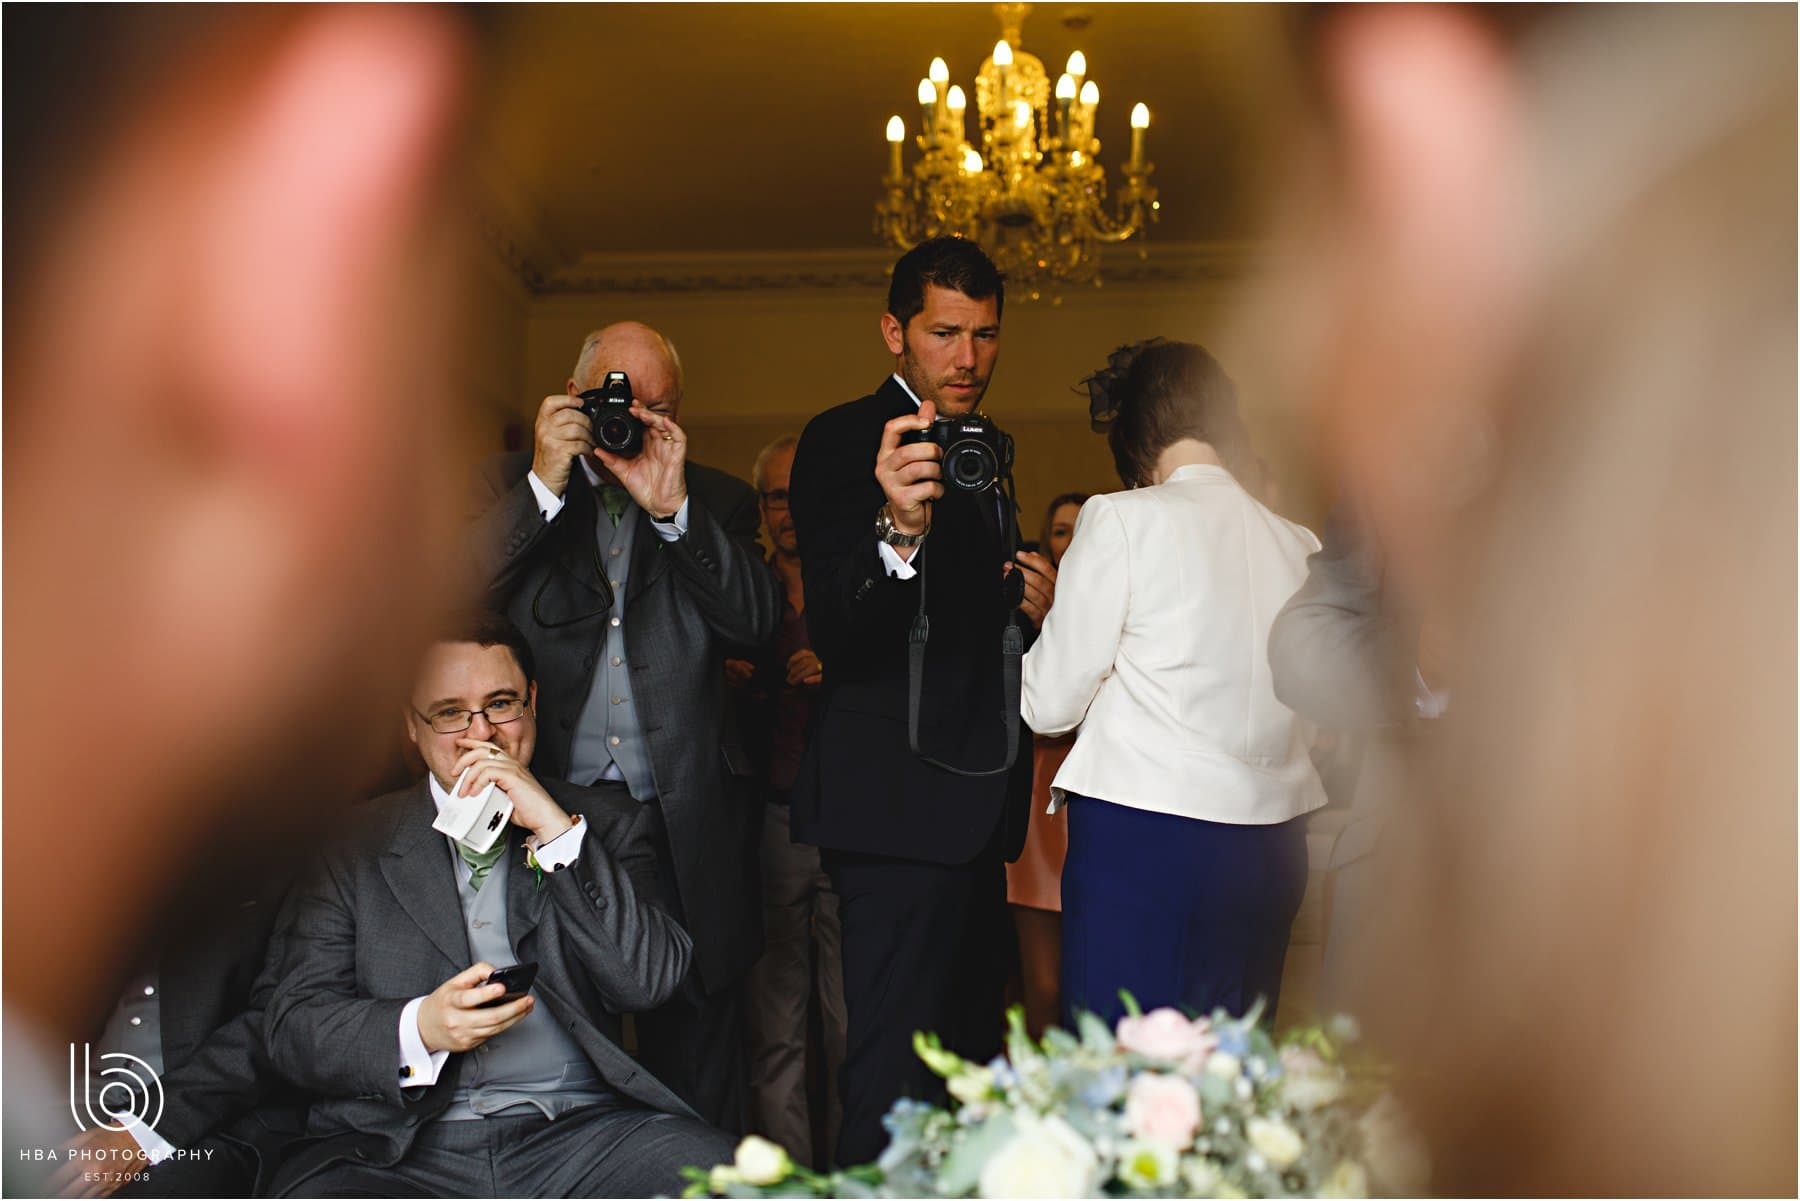 the wedding guests taking photos